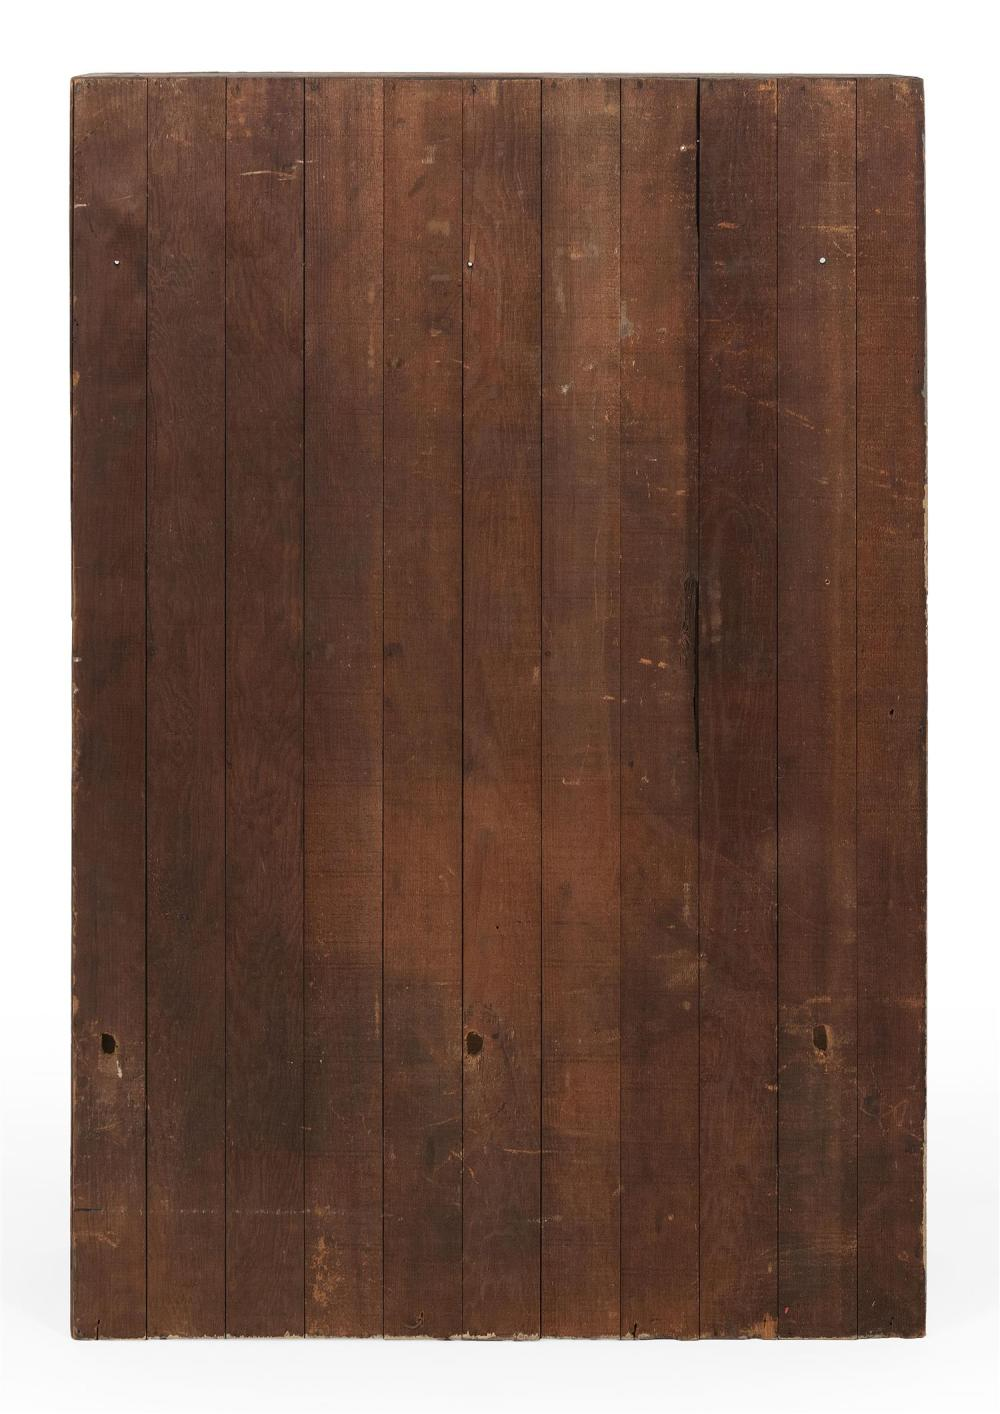 Lot - POST OFFICE CUPBOARD In pine, with traces of white paint